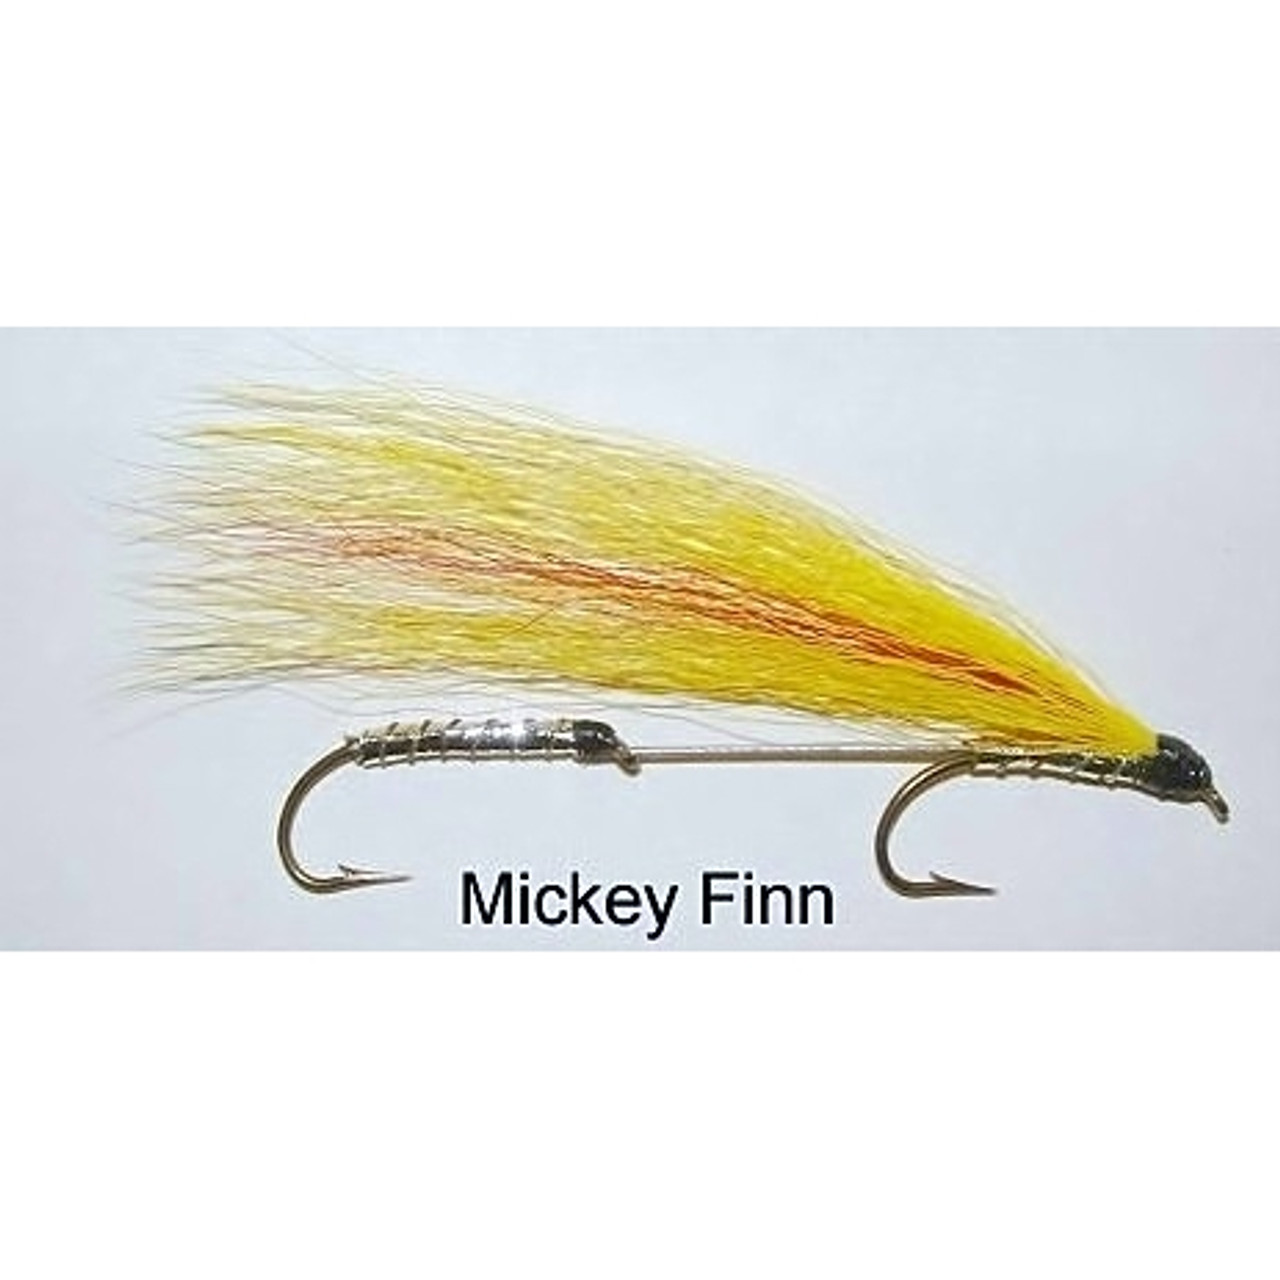 8 x size 10 mickey finn lure flies